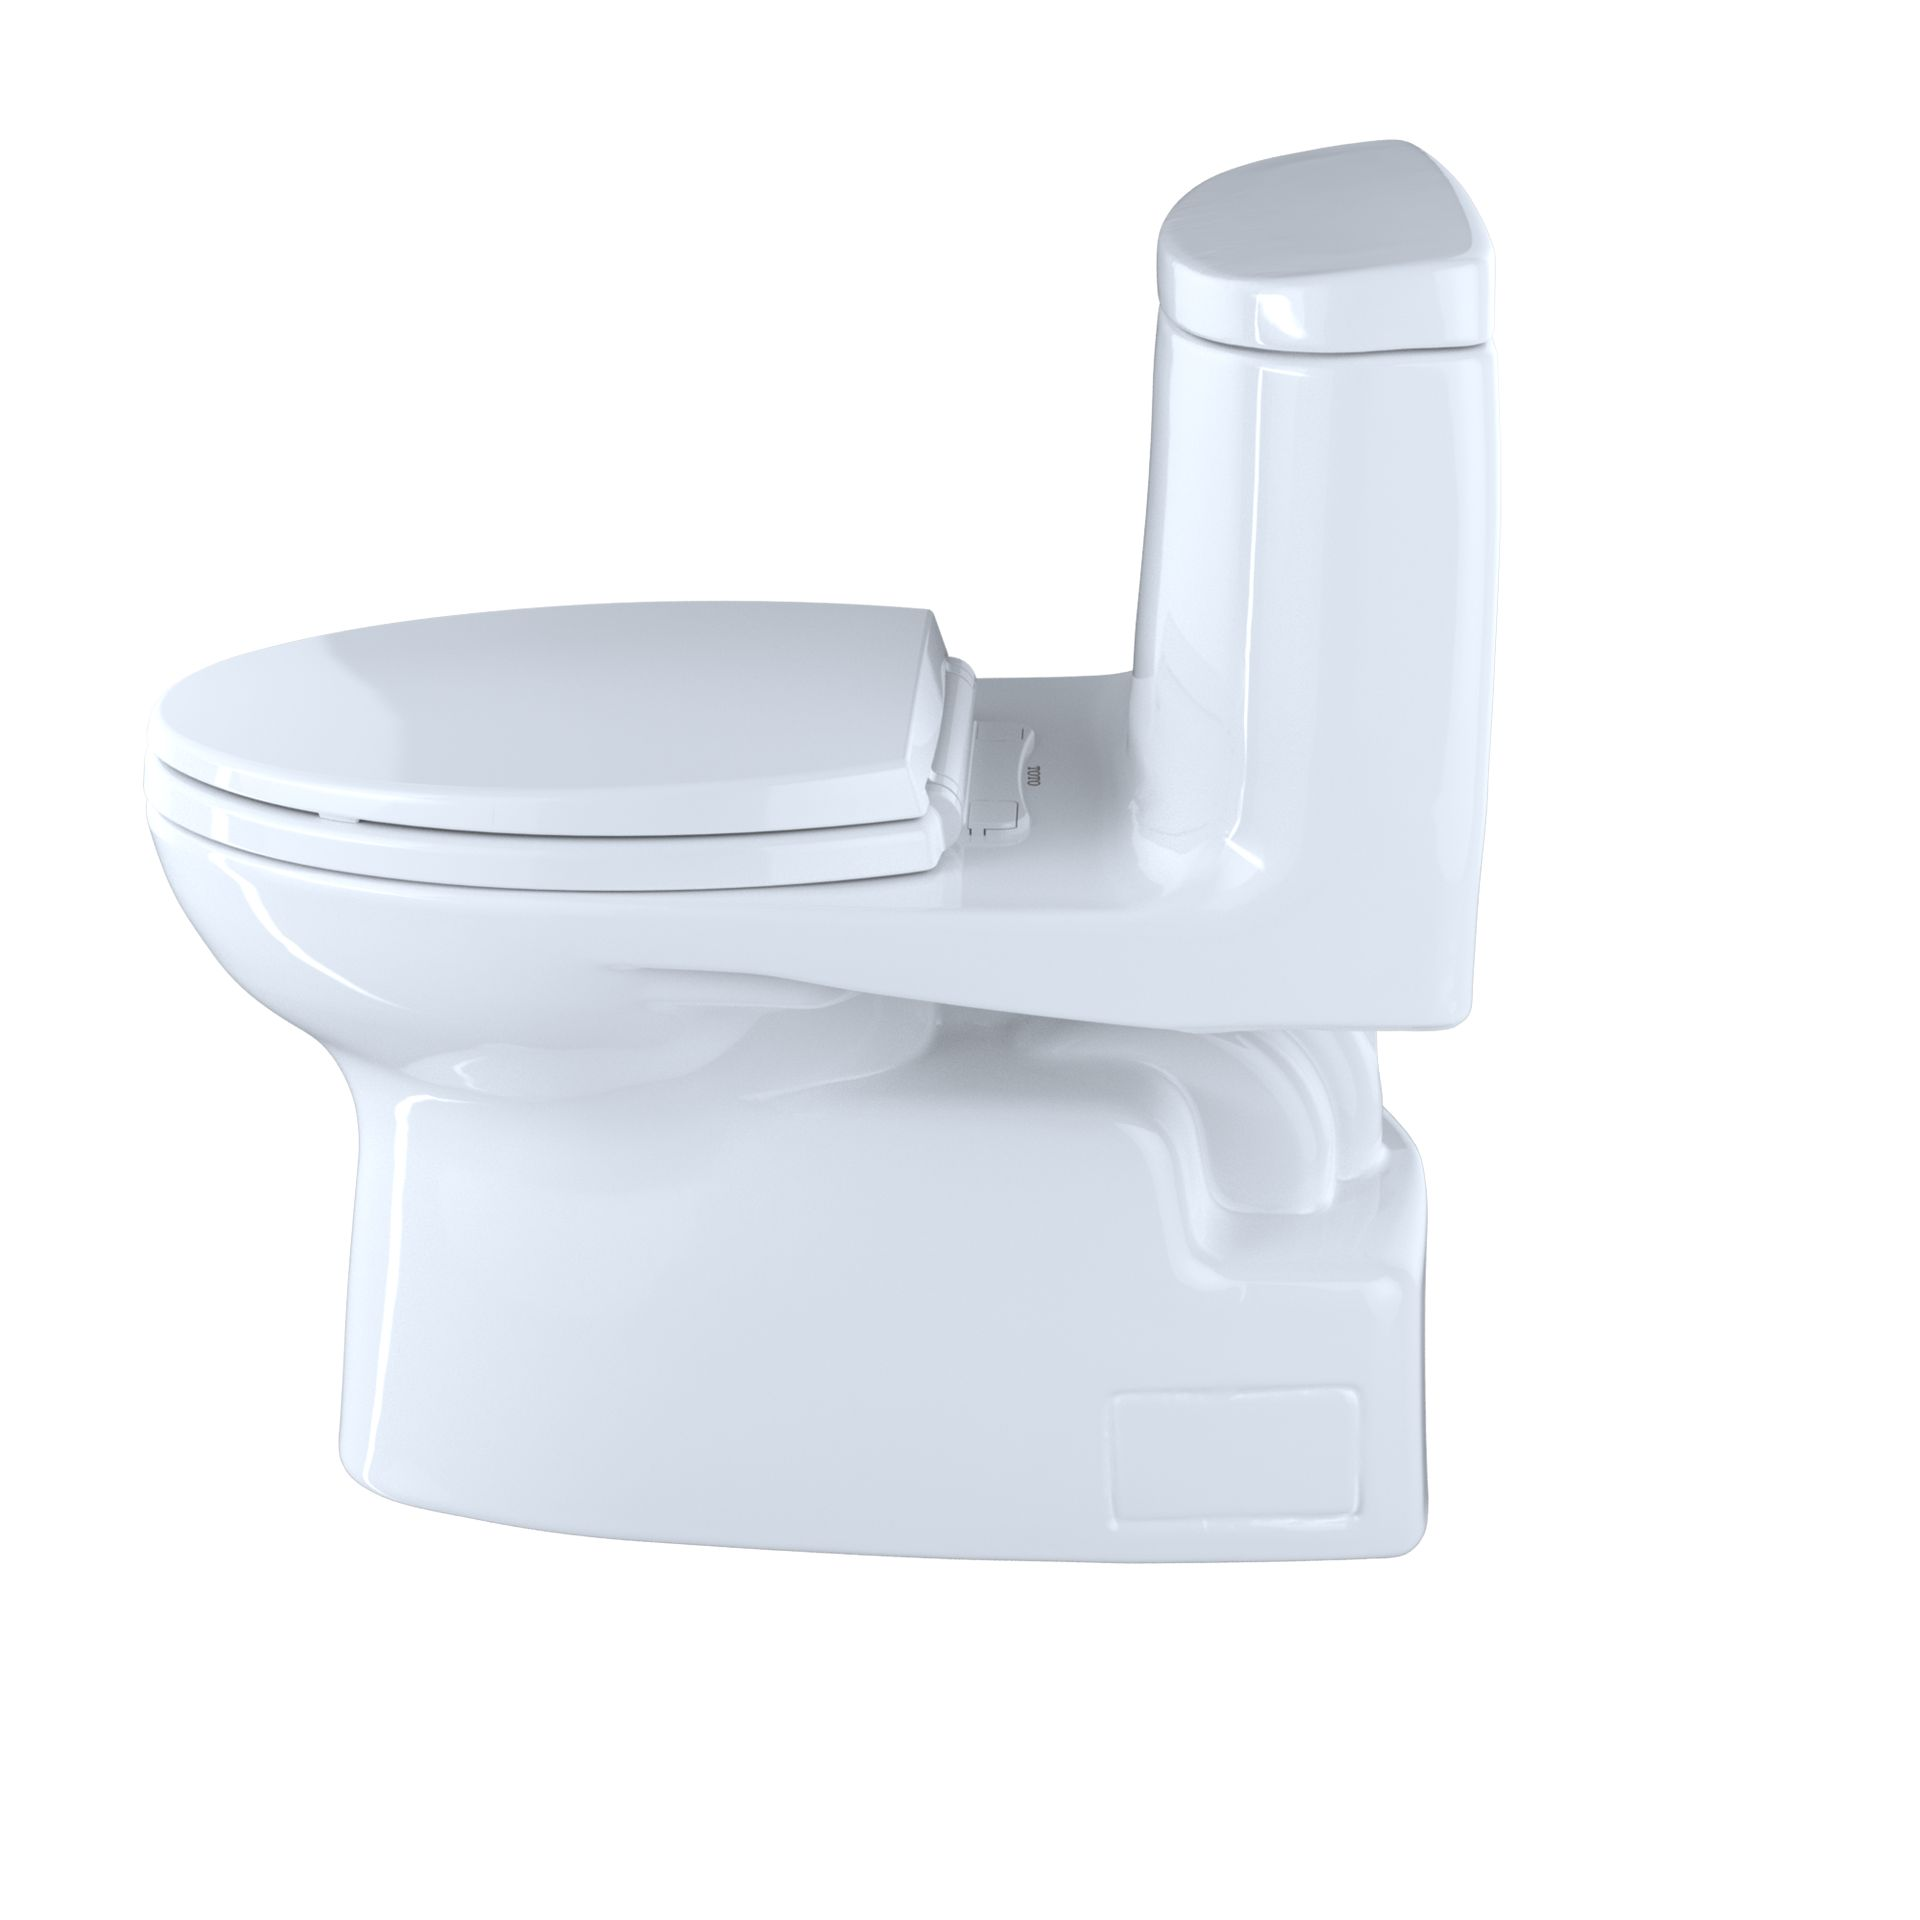 Toto Carlyle One Piece Toilet.Toto Carlyle Sedona Beige One Piece ...